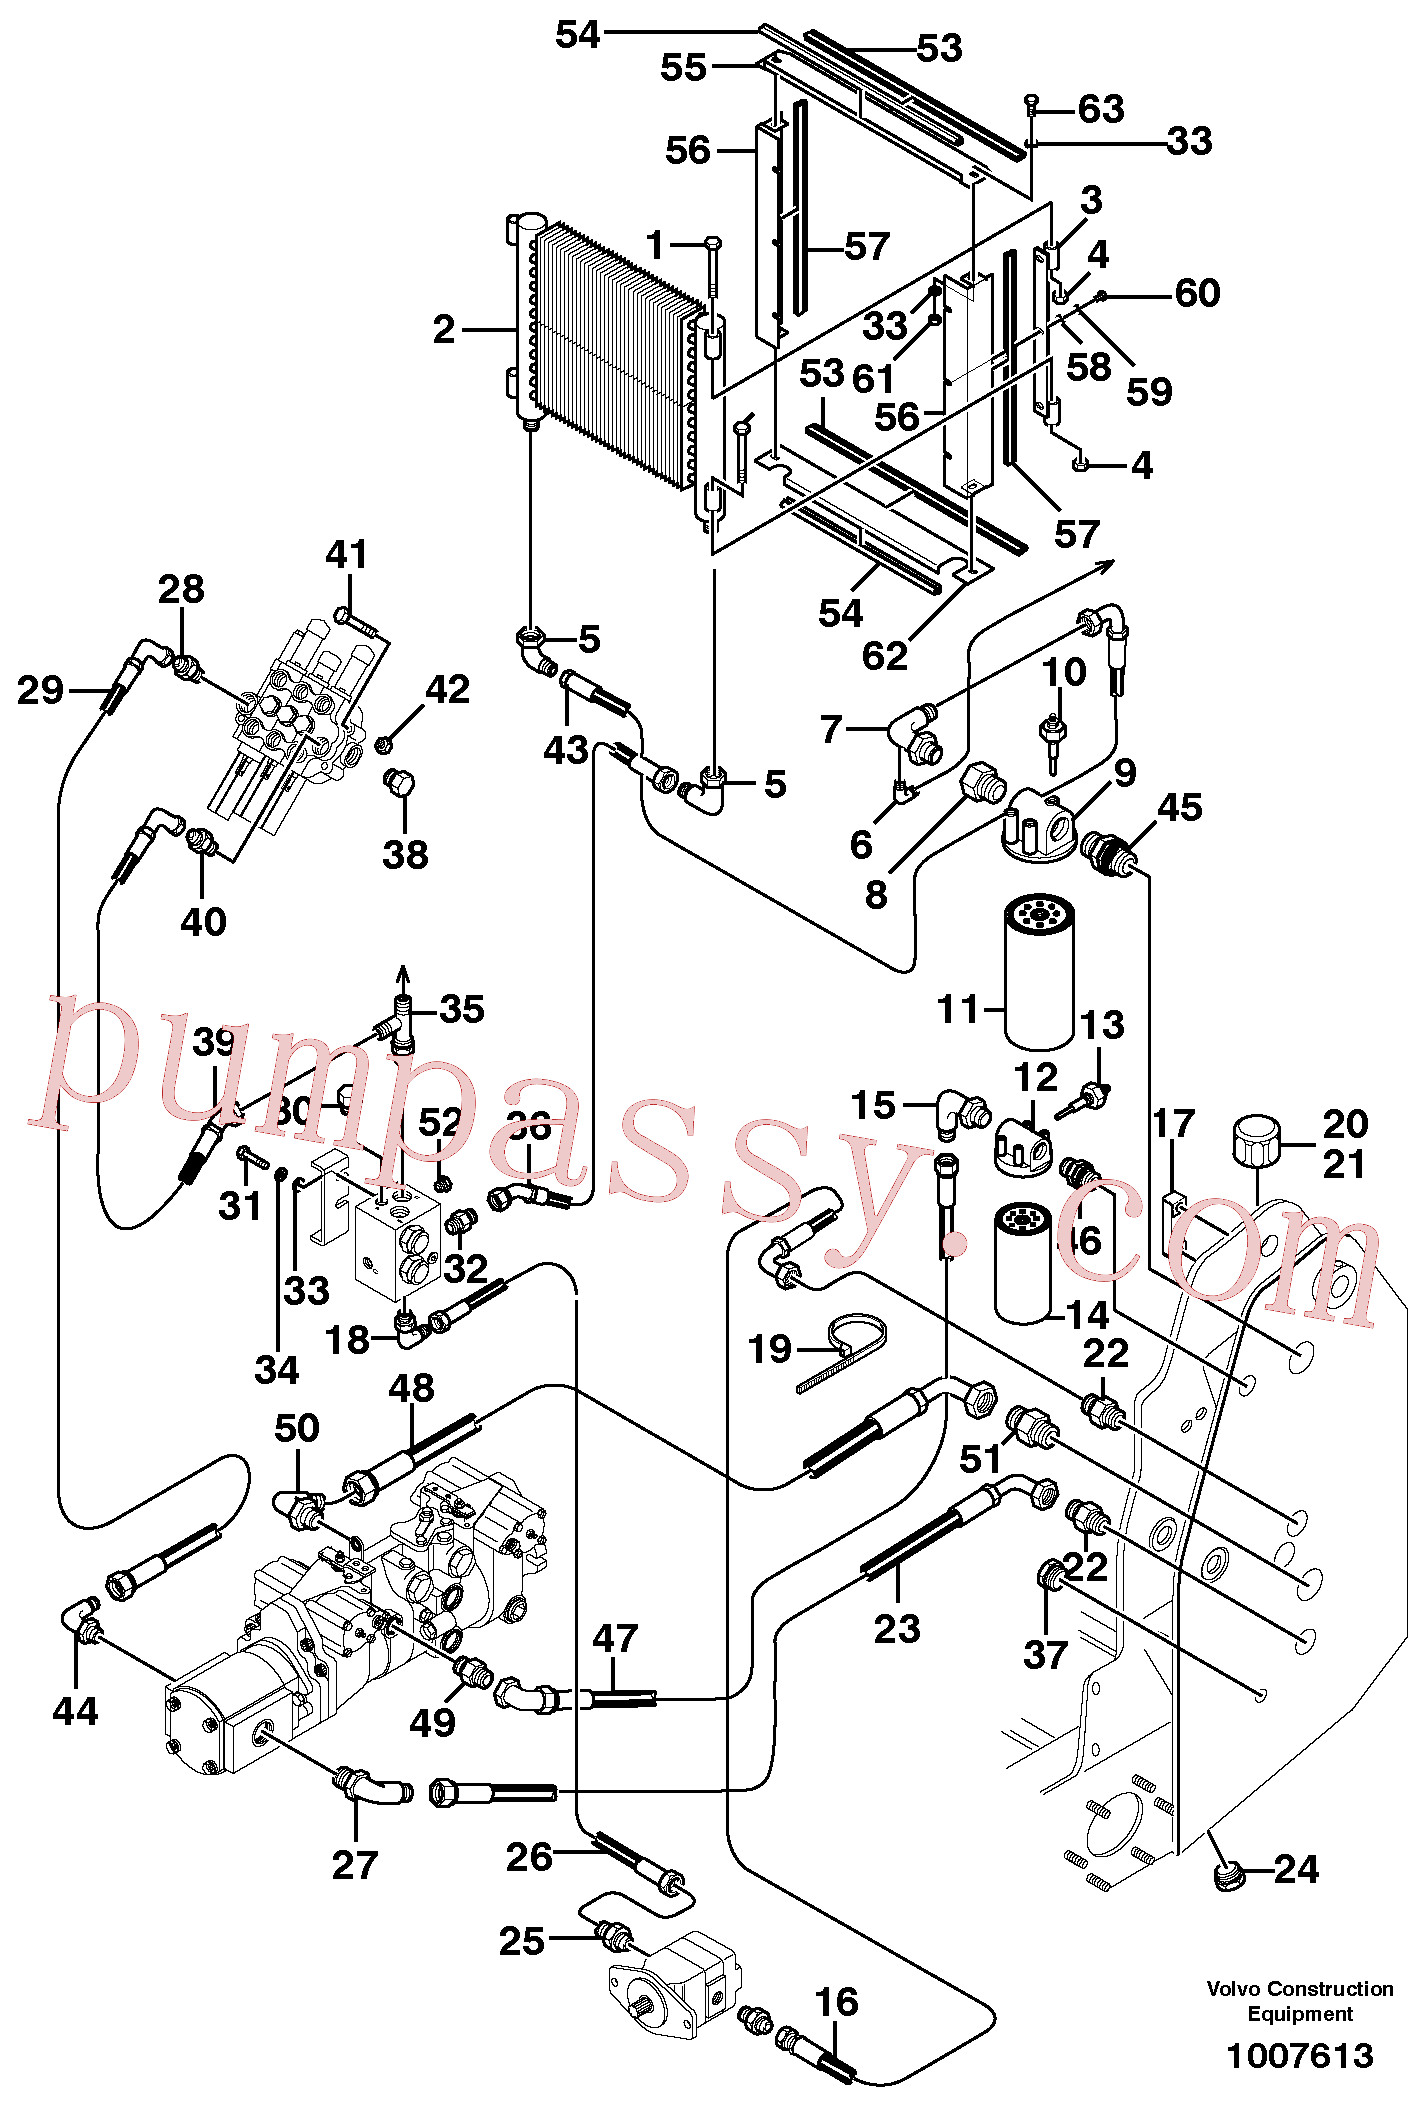 VOE955541 for Volvo Supply/return and Cooling Circuits(1007613 assembly)